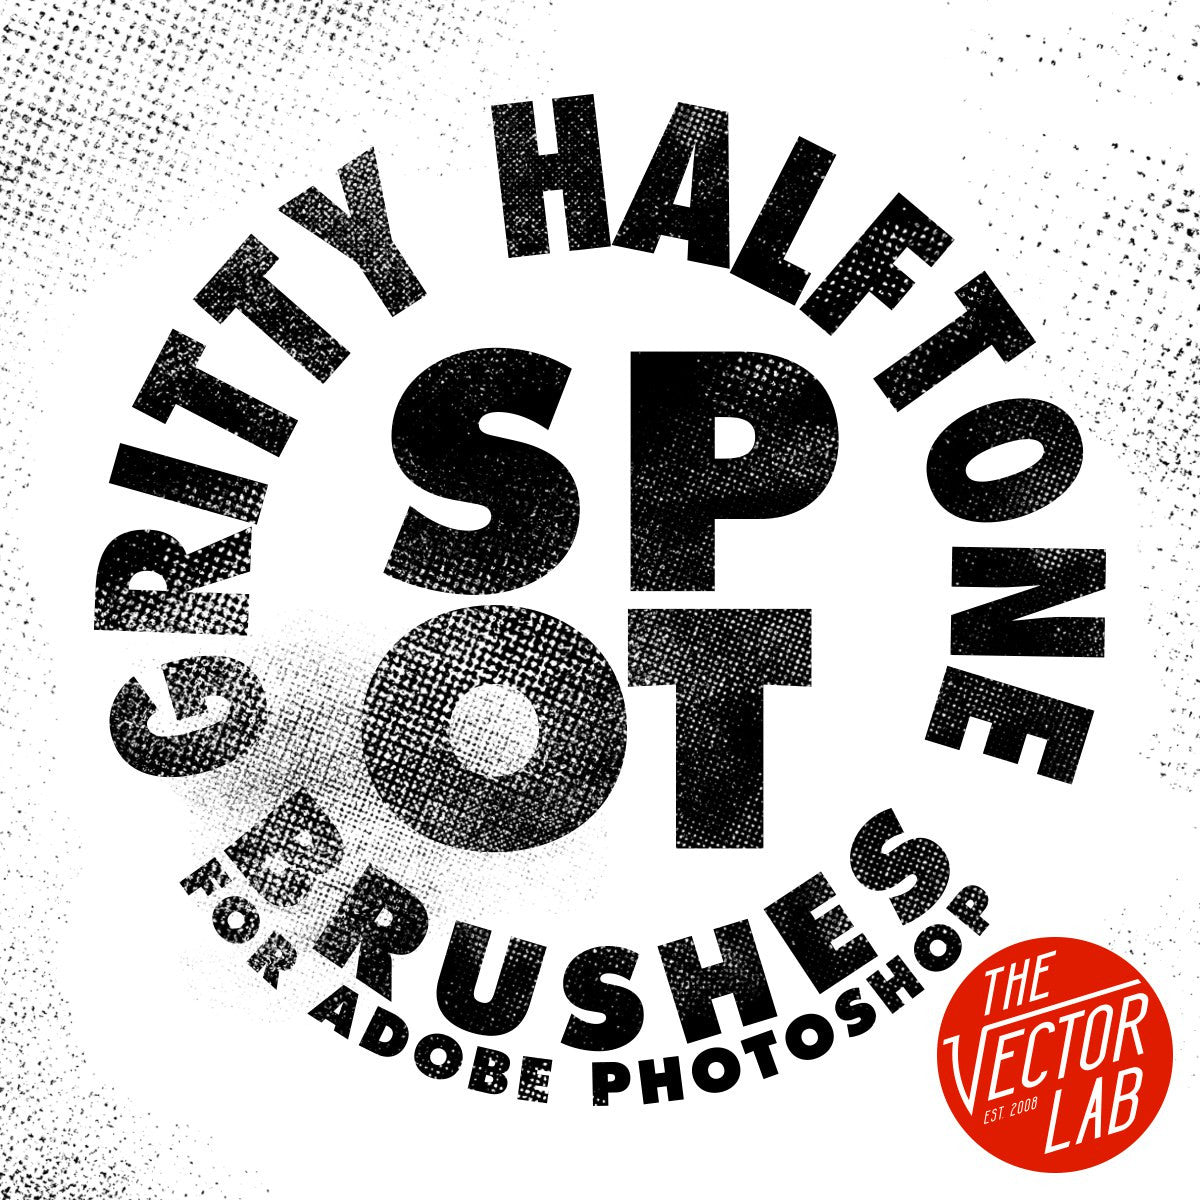 Gritty Halftone Spot Textures